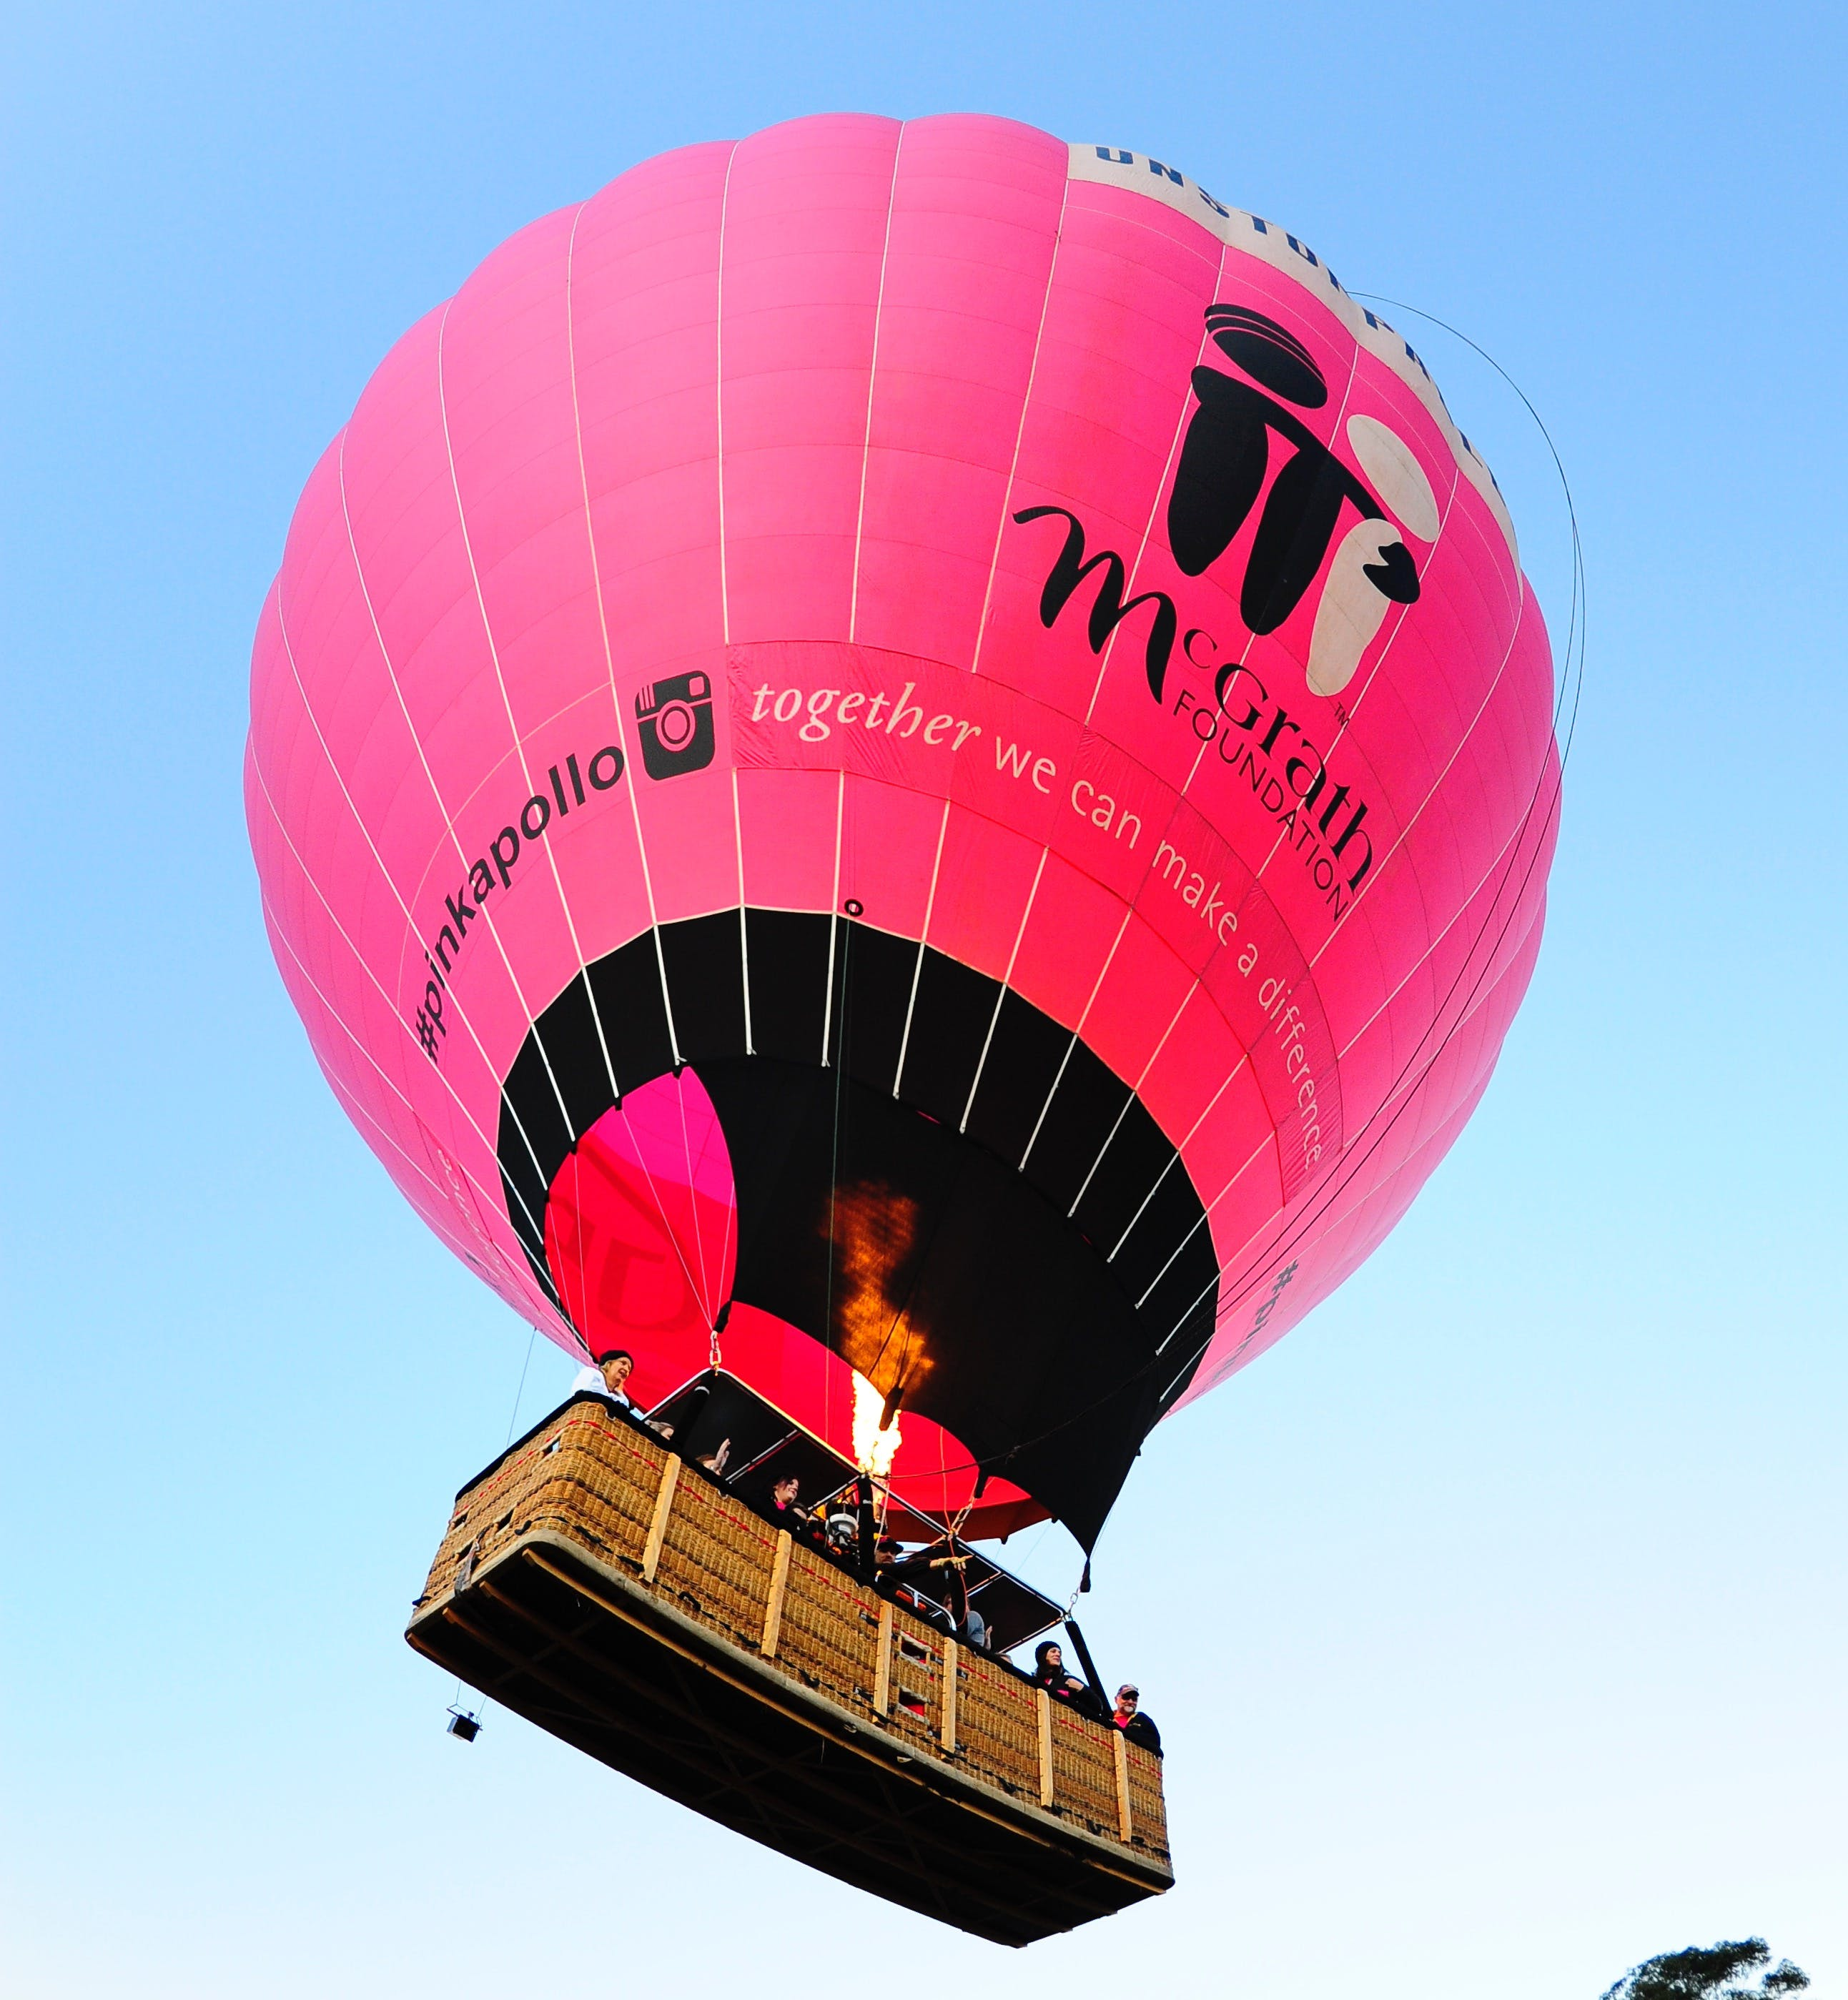 Giant Pink Hot Air Balloon rising up into the Air